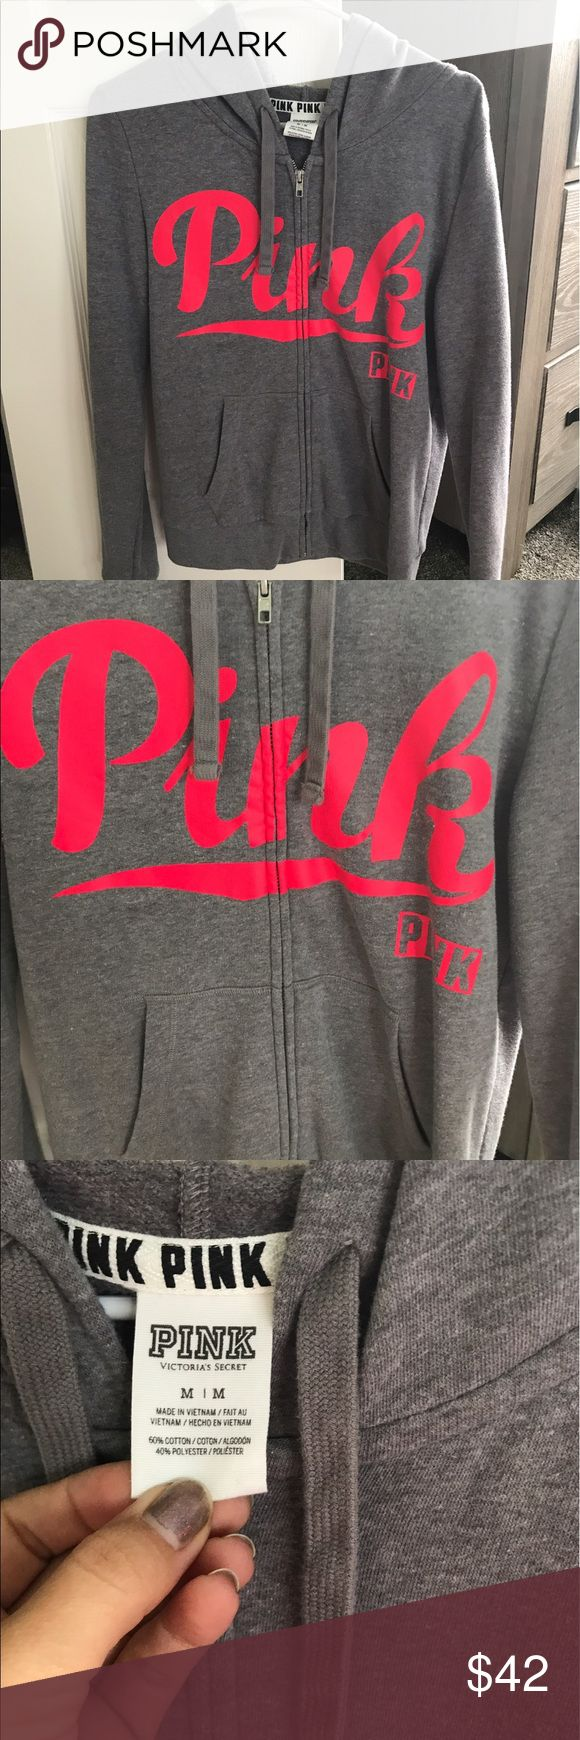 Victoria's Secret Pink zip up hoodie sweatshirt M Victoria's Secret Pink zip up hoodie jacket/sweatshirt in a size medium! Super cute! No flaws! Smoke free home! PINK Victoria's Secret Tops Sweatshirts & Hoodies